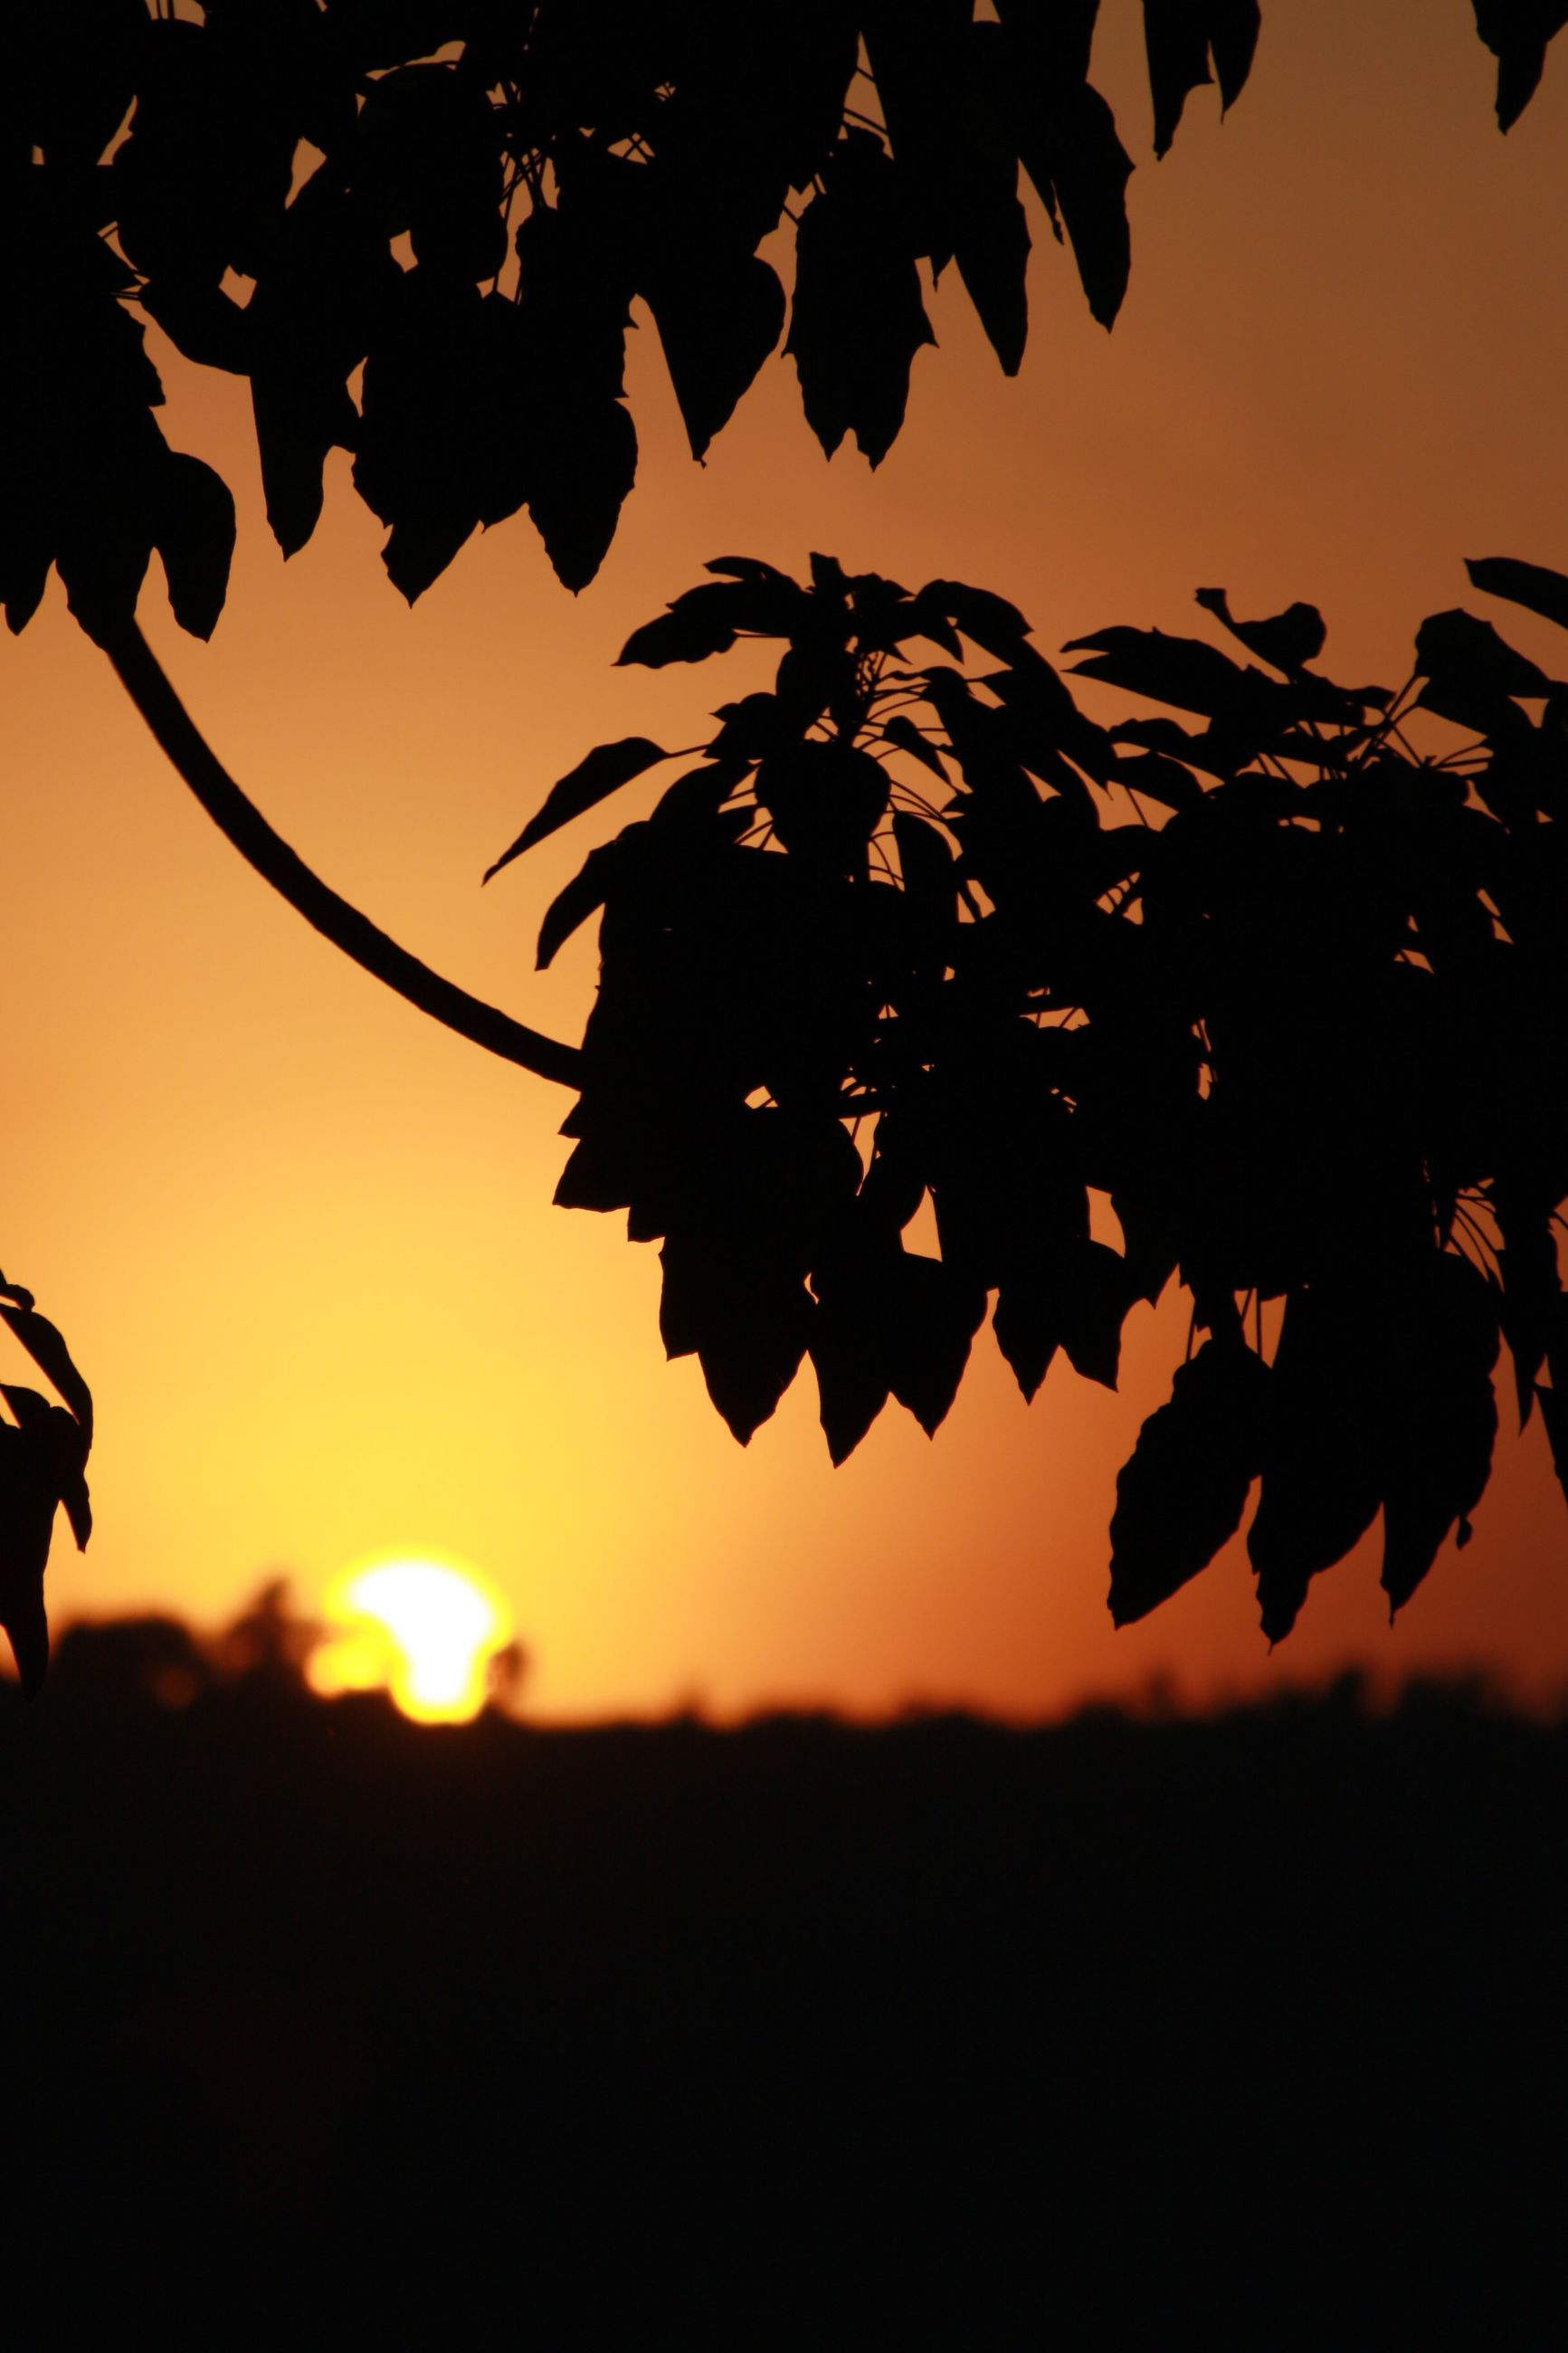 sunset, orange color, focus on foreground, nature, close-up, leaf, growth, beauty in nature, sun, sky, tranquility, scenics, plant, outdoors, no people, tranquil scene, outline, twig, idyllic, stem, selective focus, dark, landscape